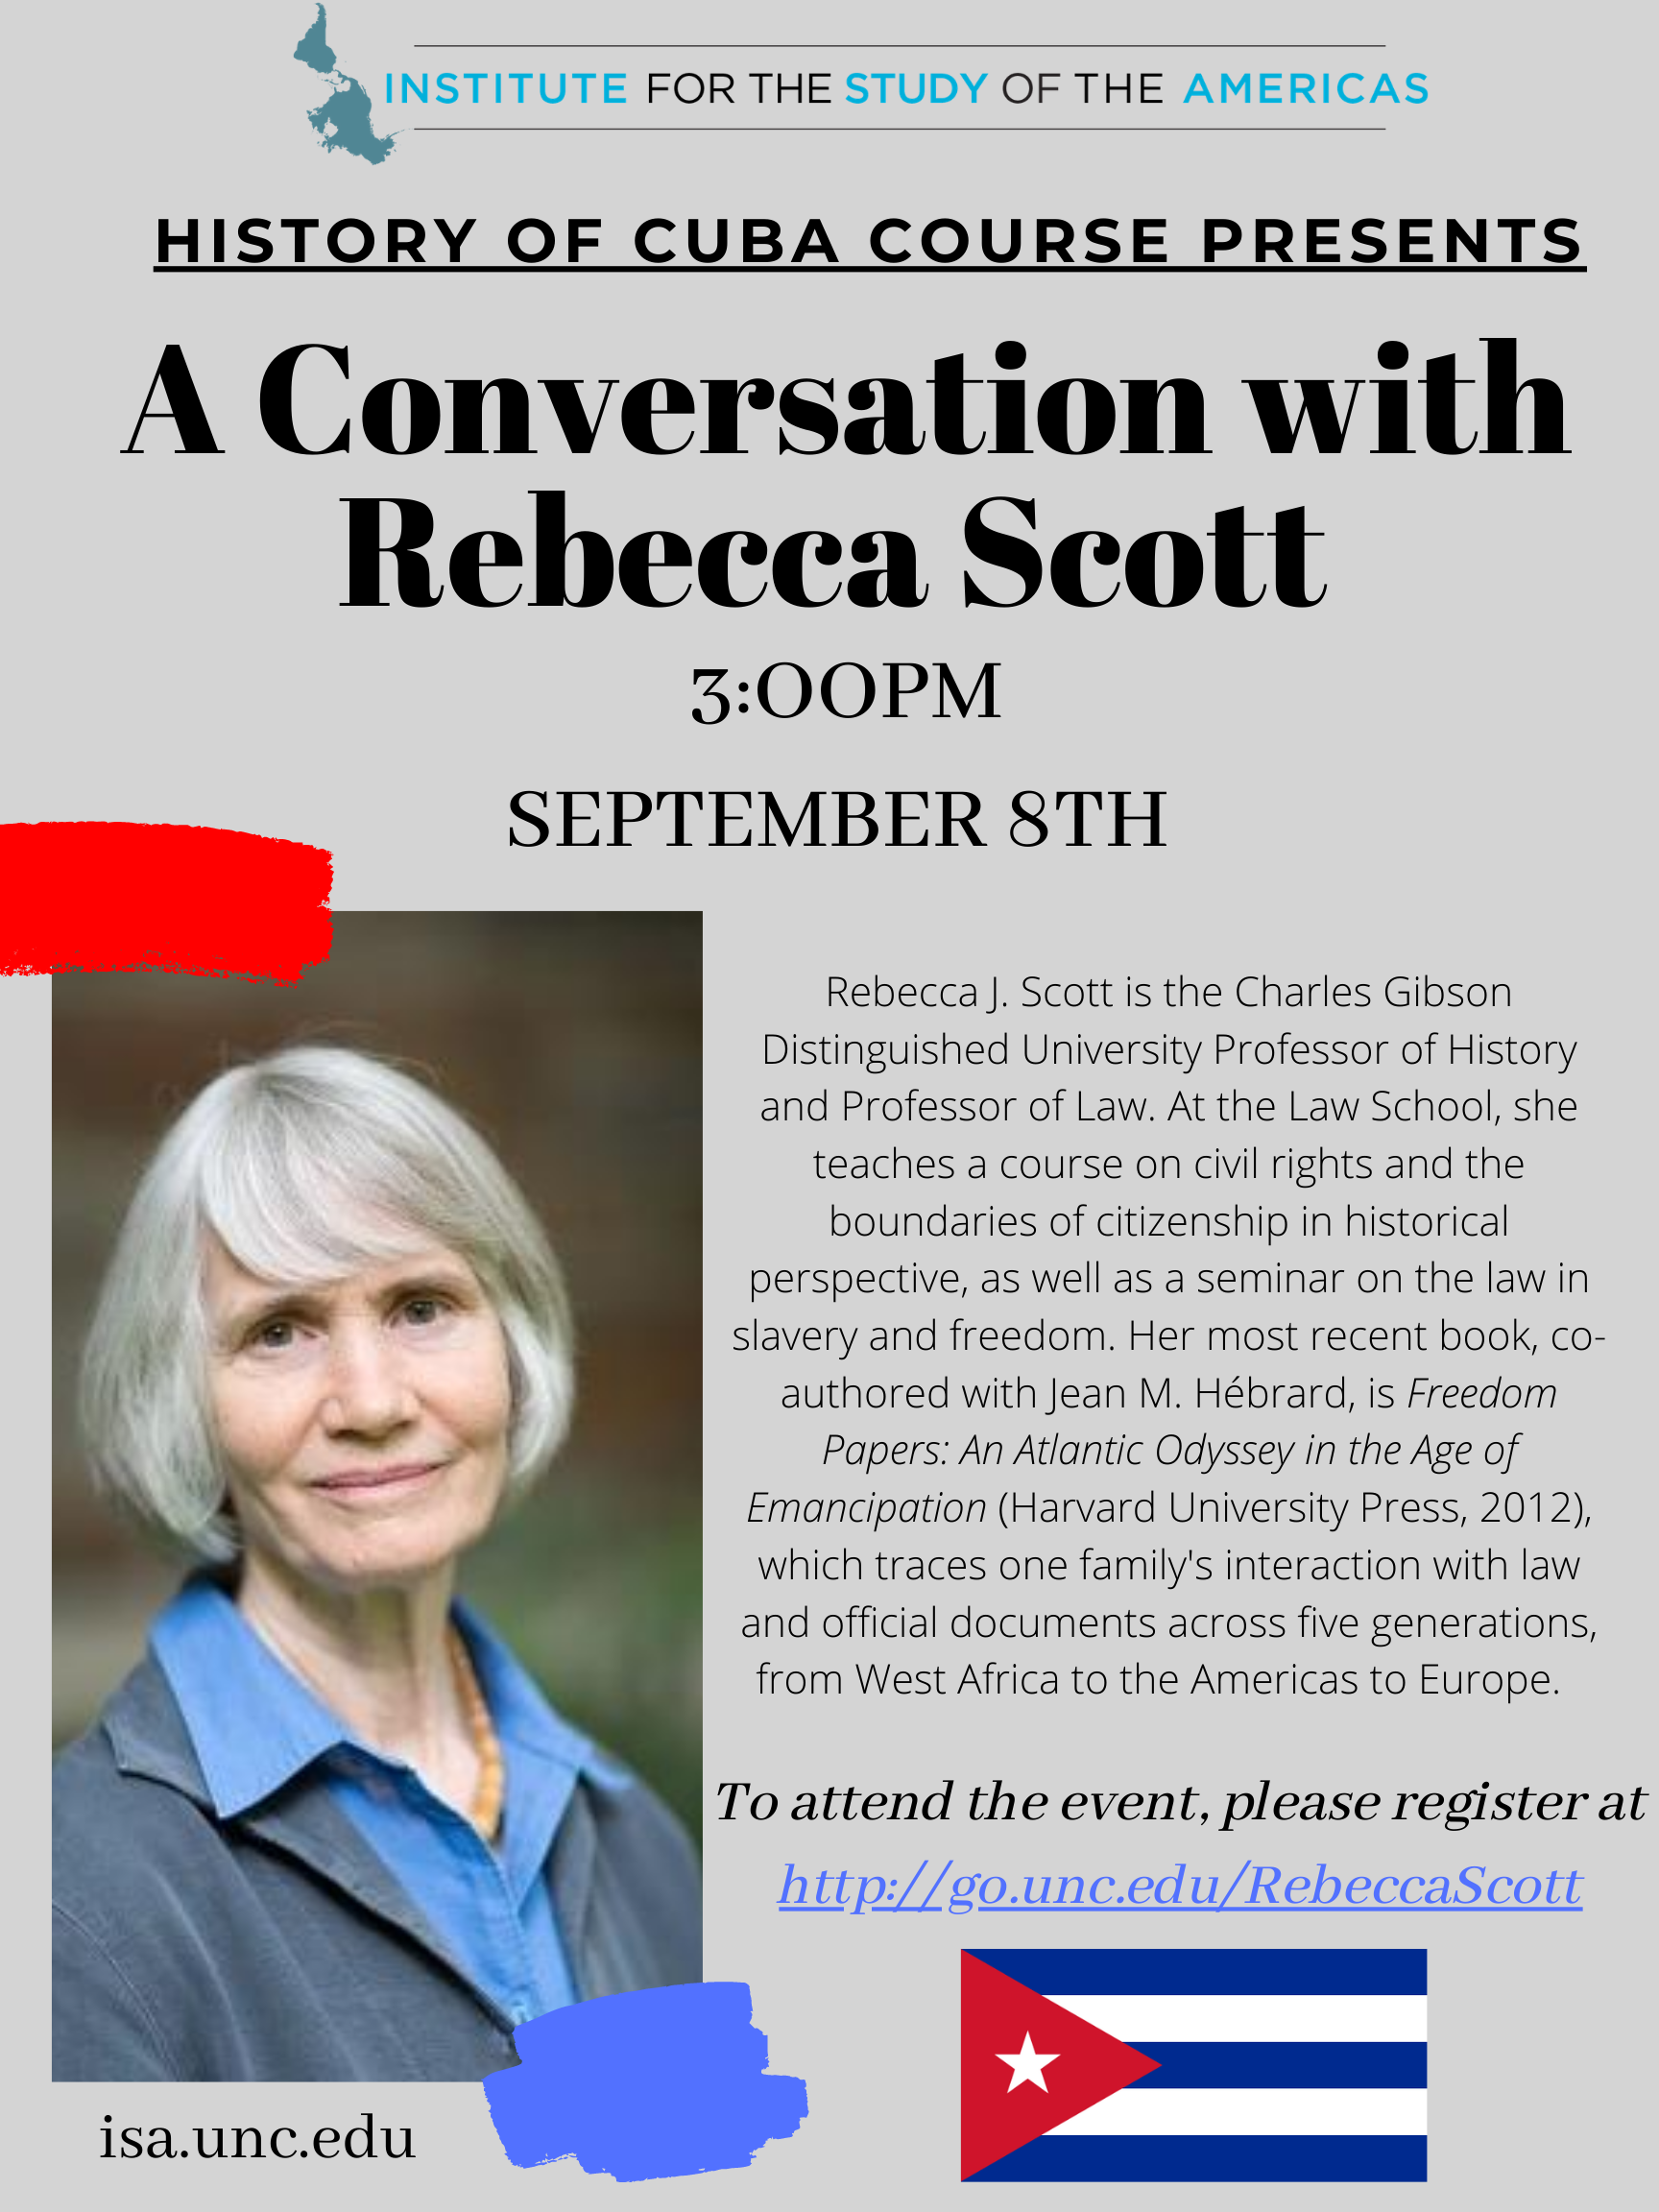 Conversation with Rebecca Scott in The History of Cuba course